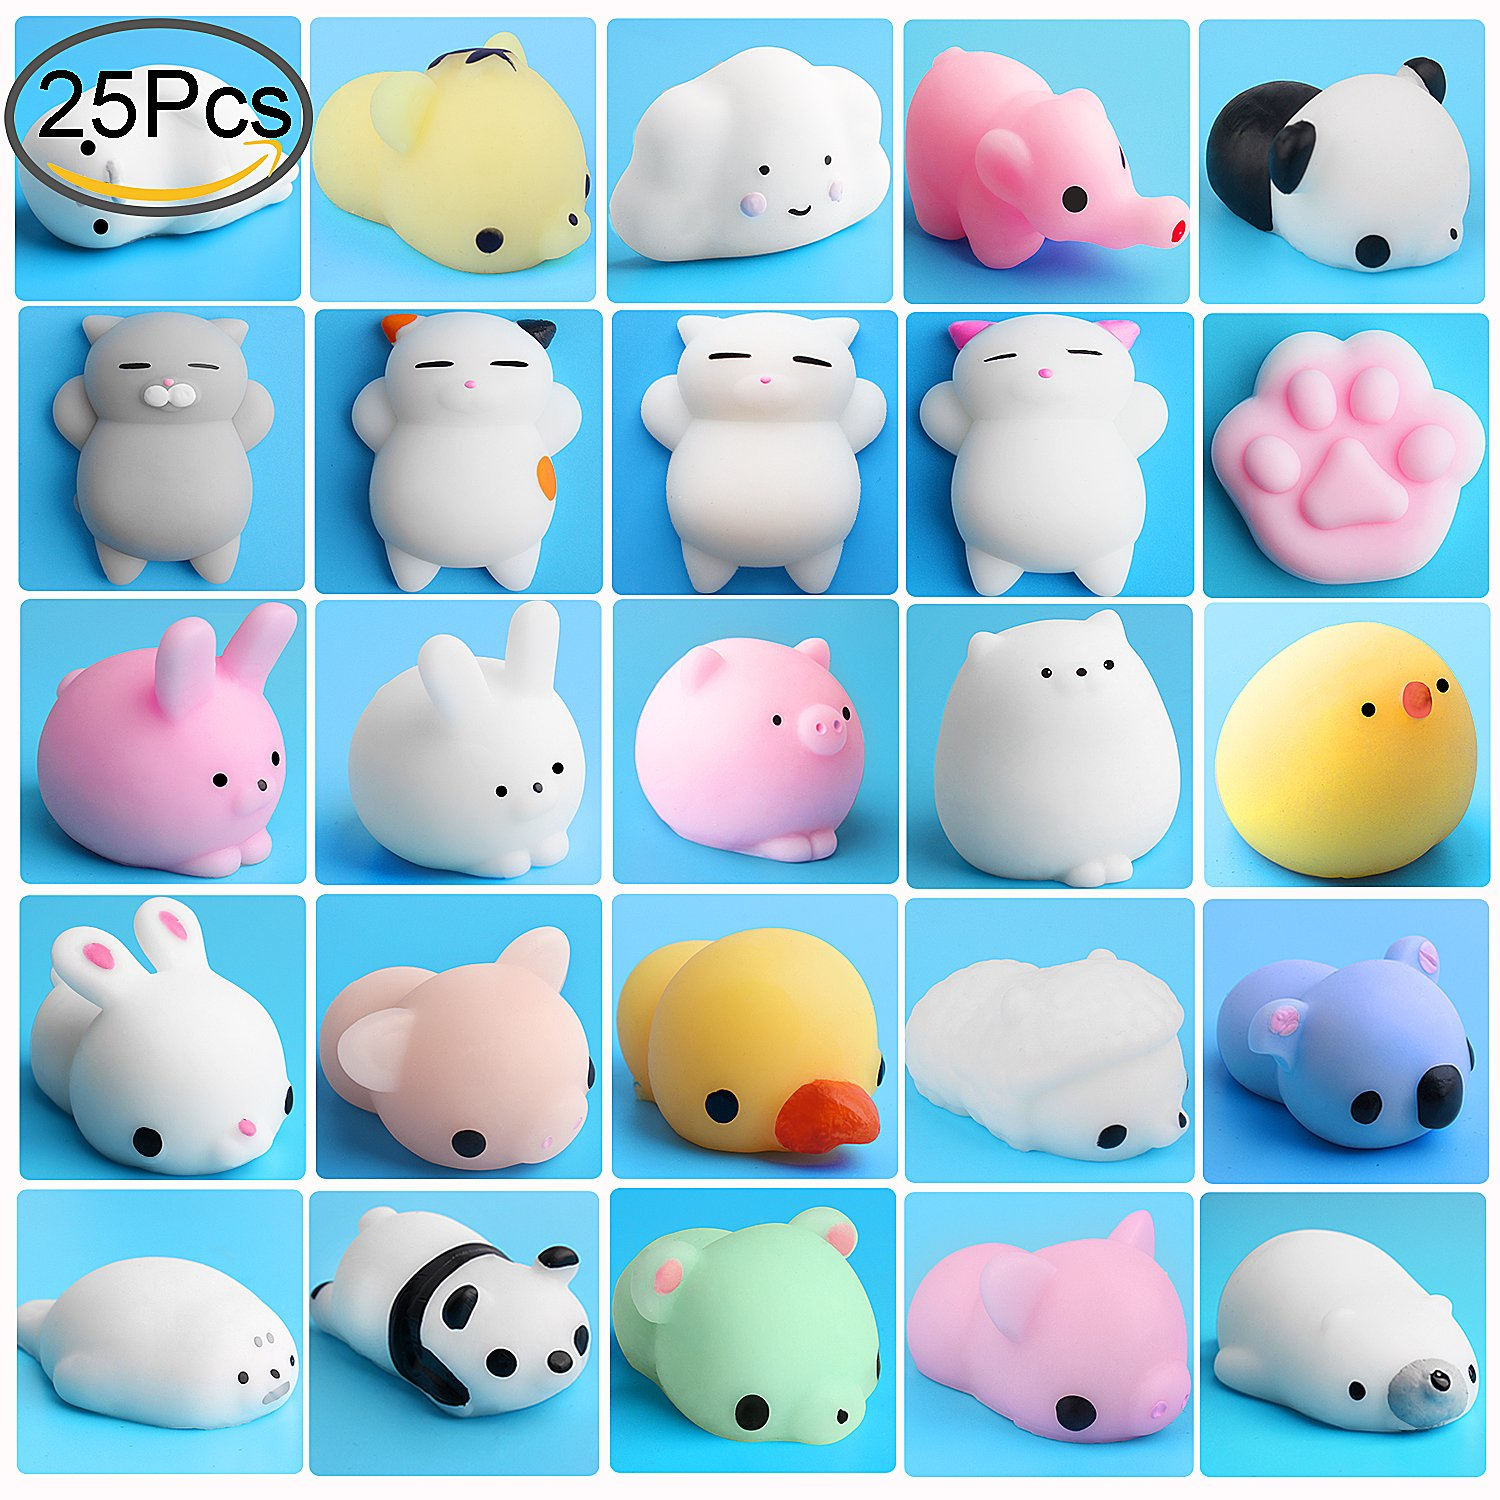 Mini Squishies Animals, Outee 25 Pcs Animal Toys Stress Relief Cat Squishy Stress Relief Animal Mochi Cat Squishy Squeeze Mini Squishies Seal Rabbit Chicken Duckling Elephant Sheep Cat, Random color